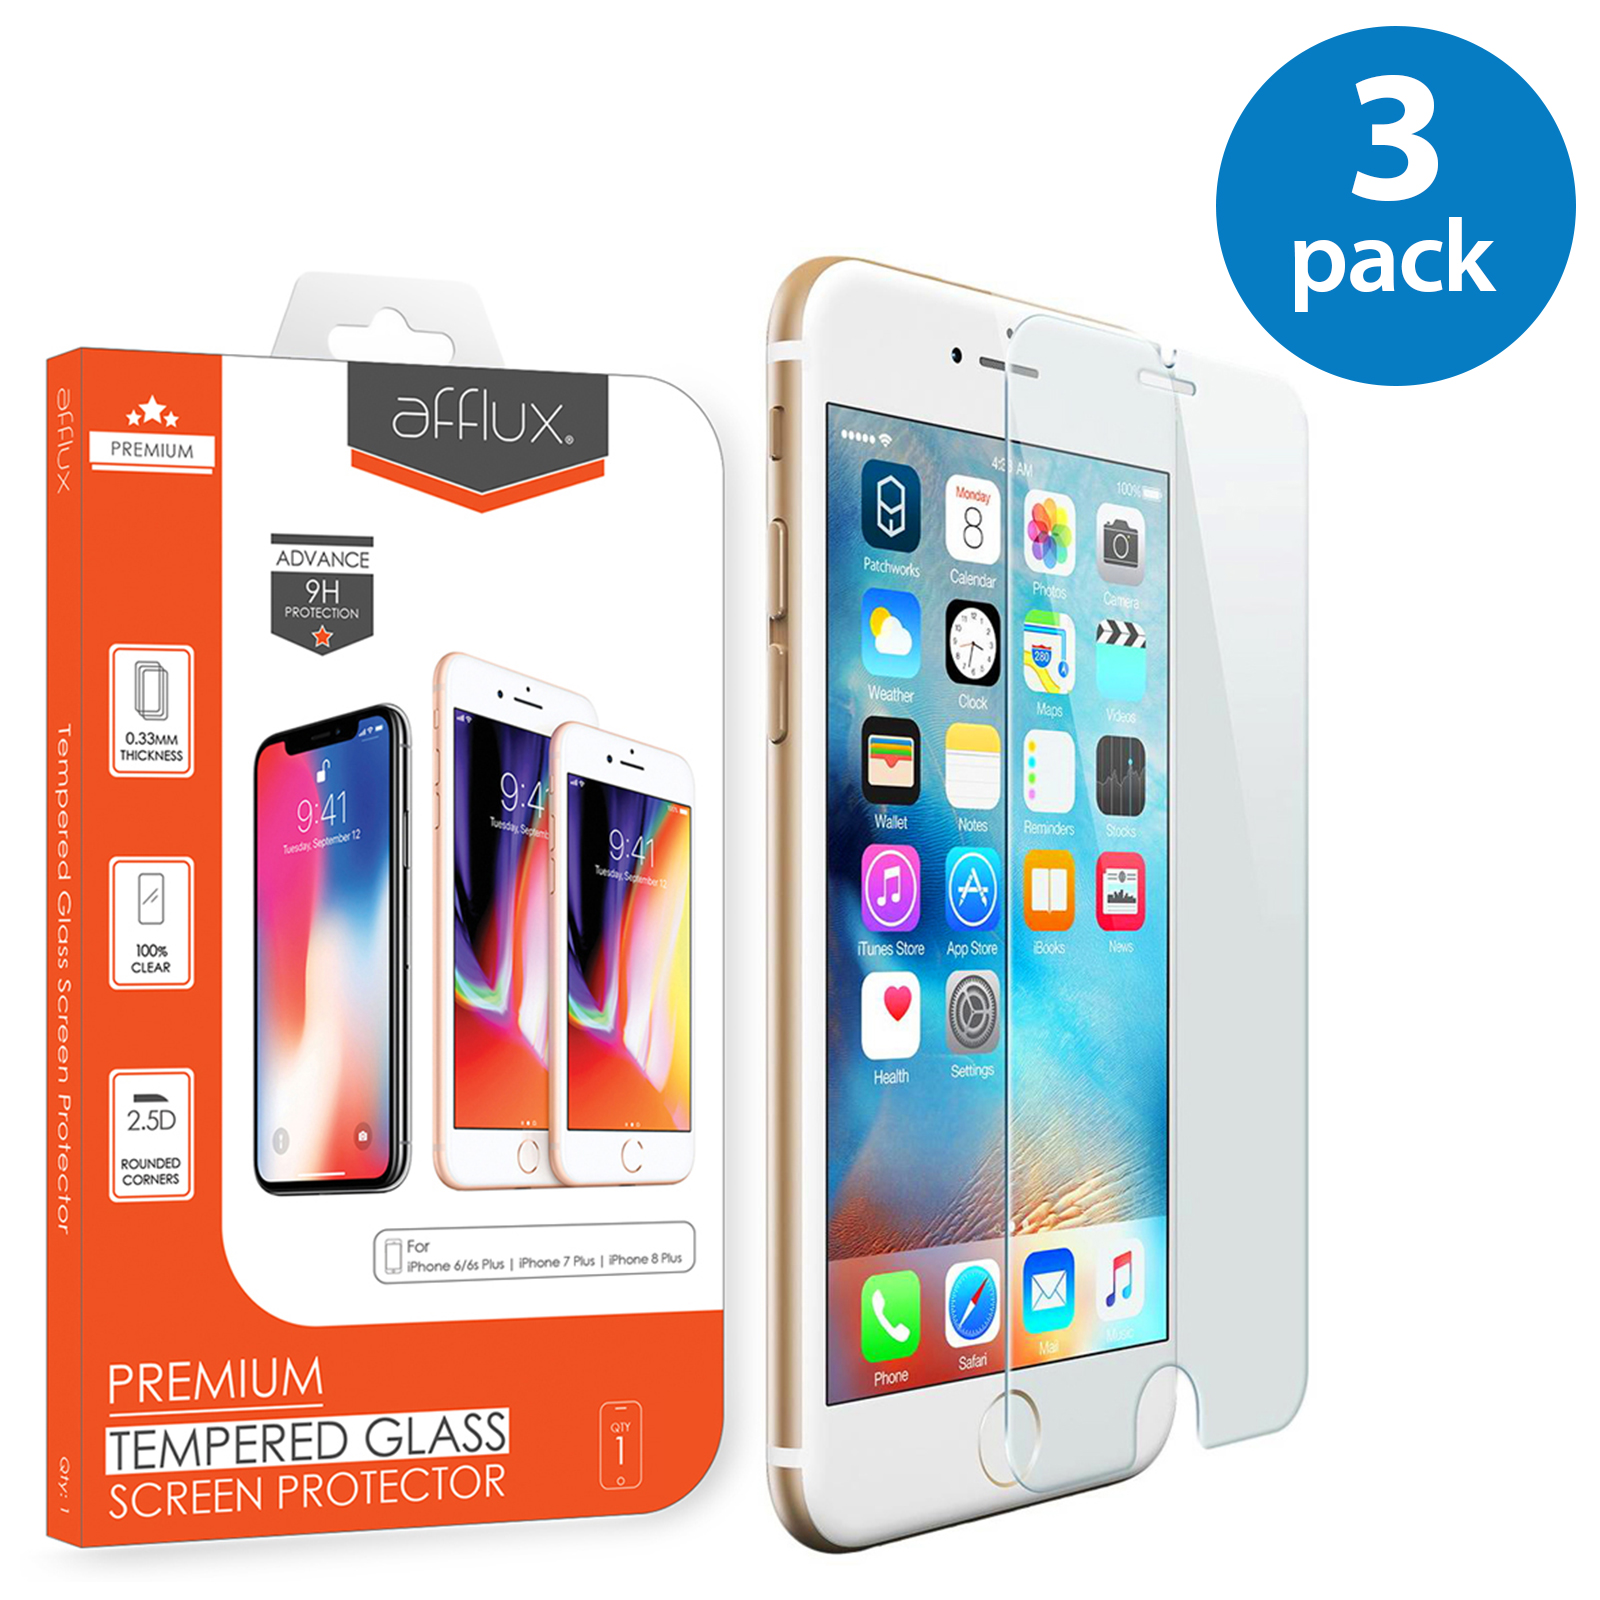 3x Afflux Apple iPhone 8 Plus Tempered Glass Screen Protector Film Guard Case Friendly For iPhone 8 Plus